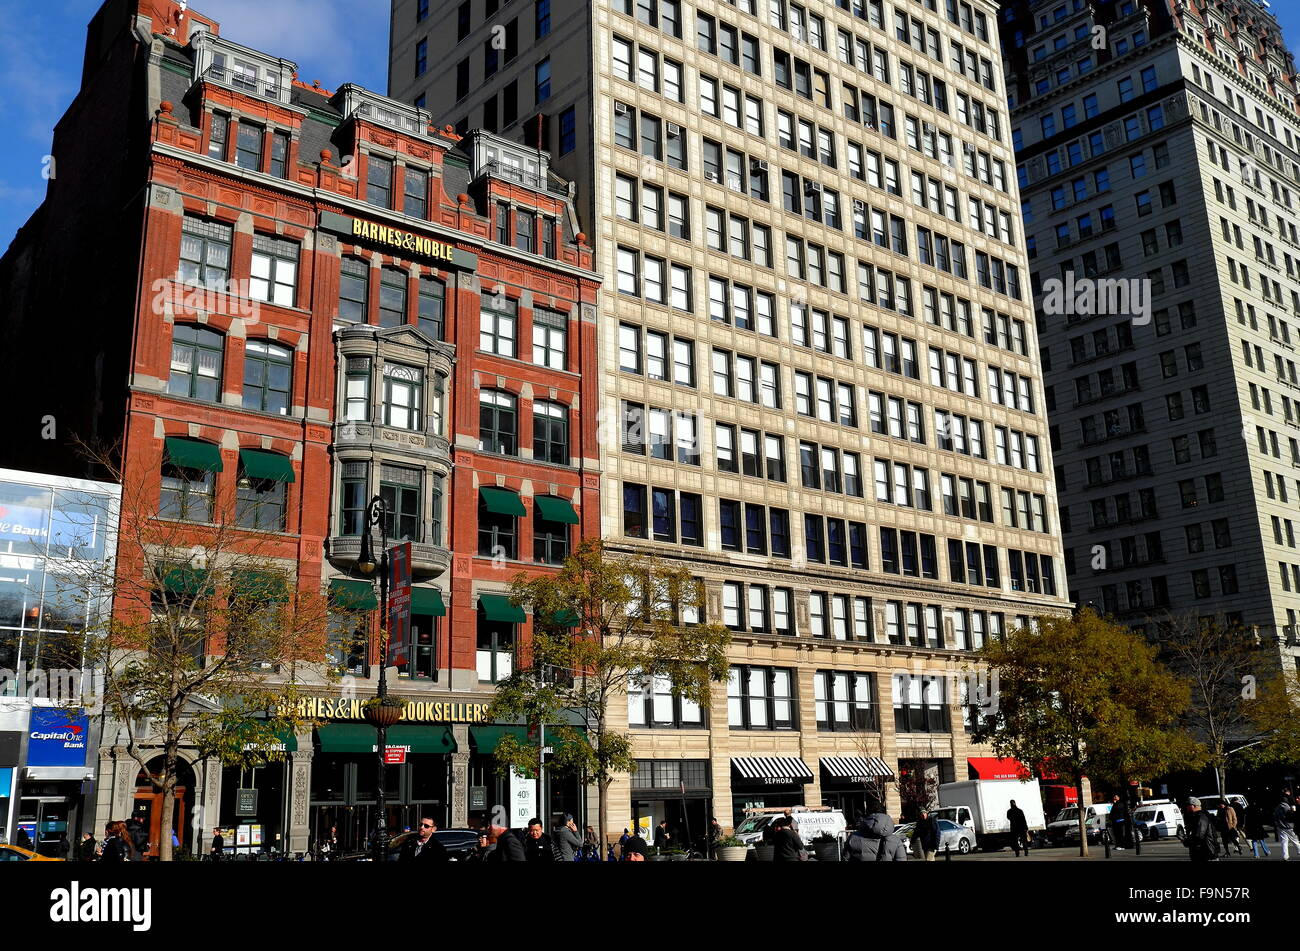 New York City:  Barnes & Noble book sellers and office buildings on the west side of Union Square * - Stock Image